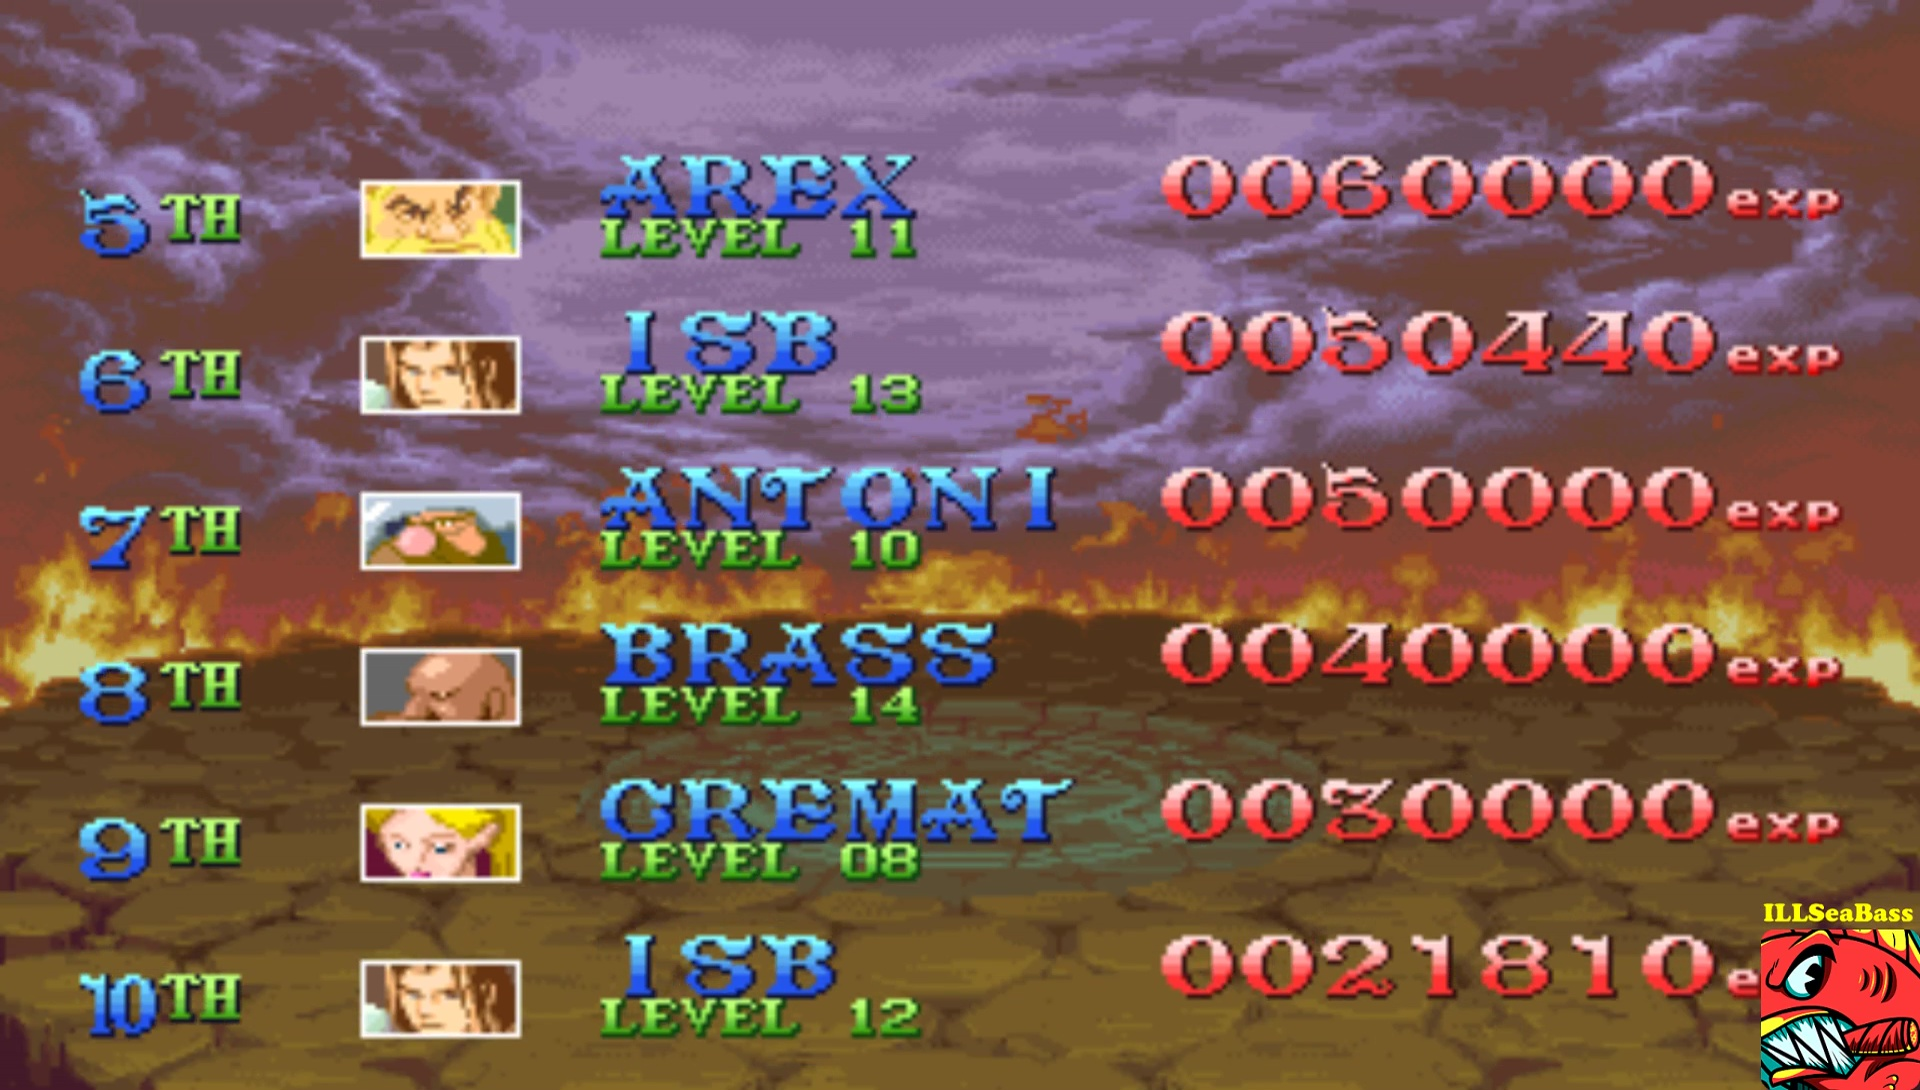 ILLSeaBass: Dungeons & Dragons: Shadows over Mystara [ddsom] (Arcade Emulated / M.A.M.E.) 50,440 points on 2017-02-04 18:42:53